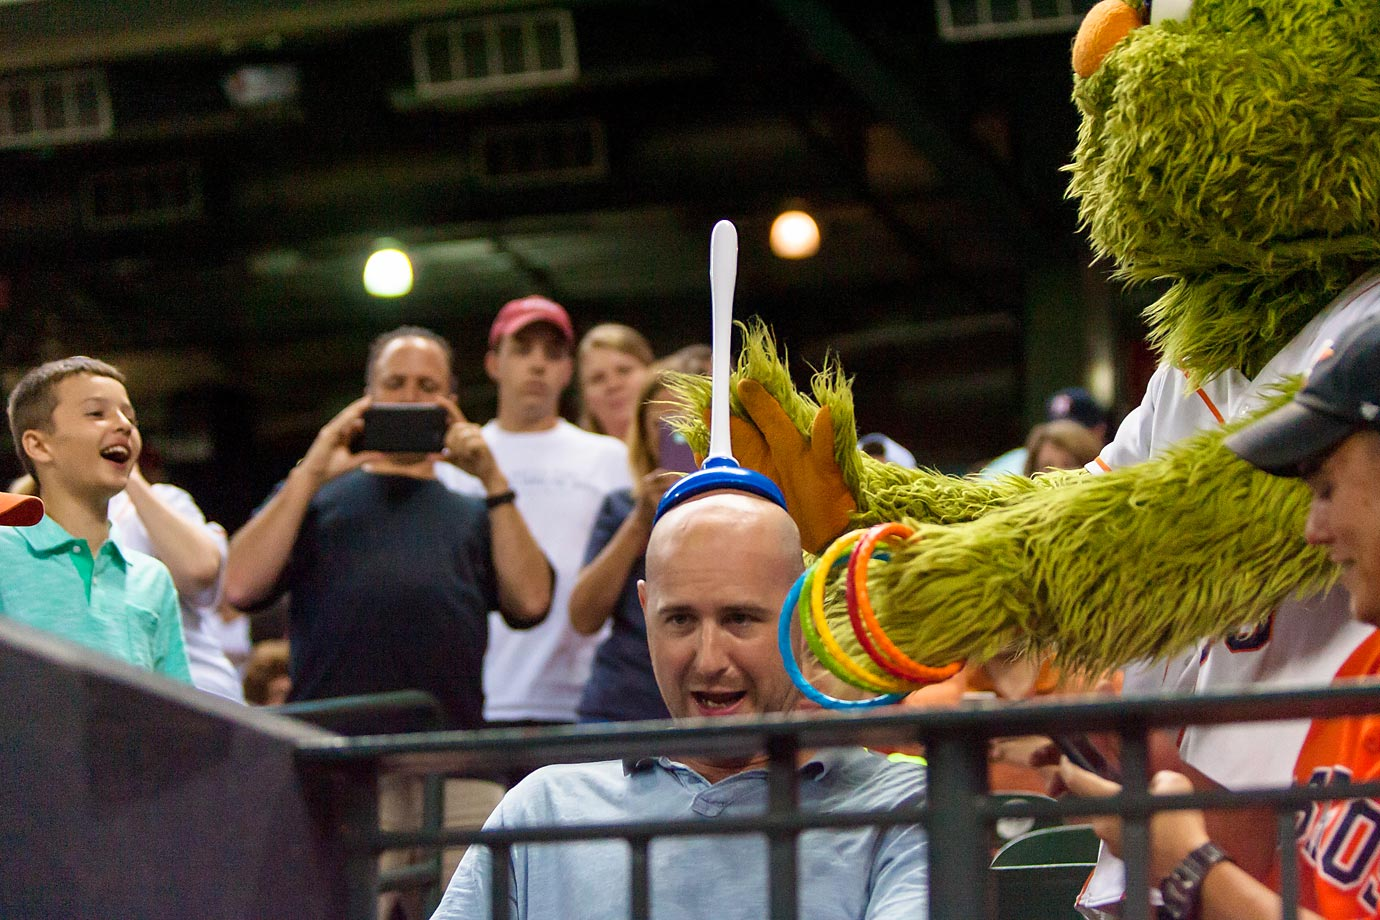 Houston Astros mascot Orbit having a little fun with a fan.